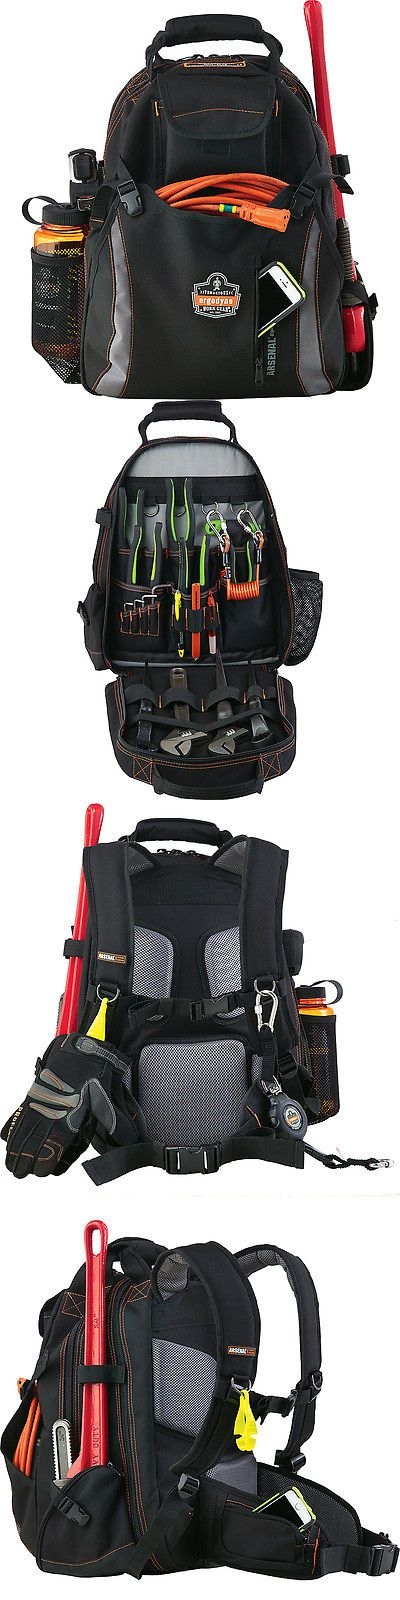 Other Team Sports 159133: Ergodyne 5843 Tool Backpack Dual Compartment - Black Other Sports Bag New -> BUY IT NOW ONLY: $131.99 on eBay!